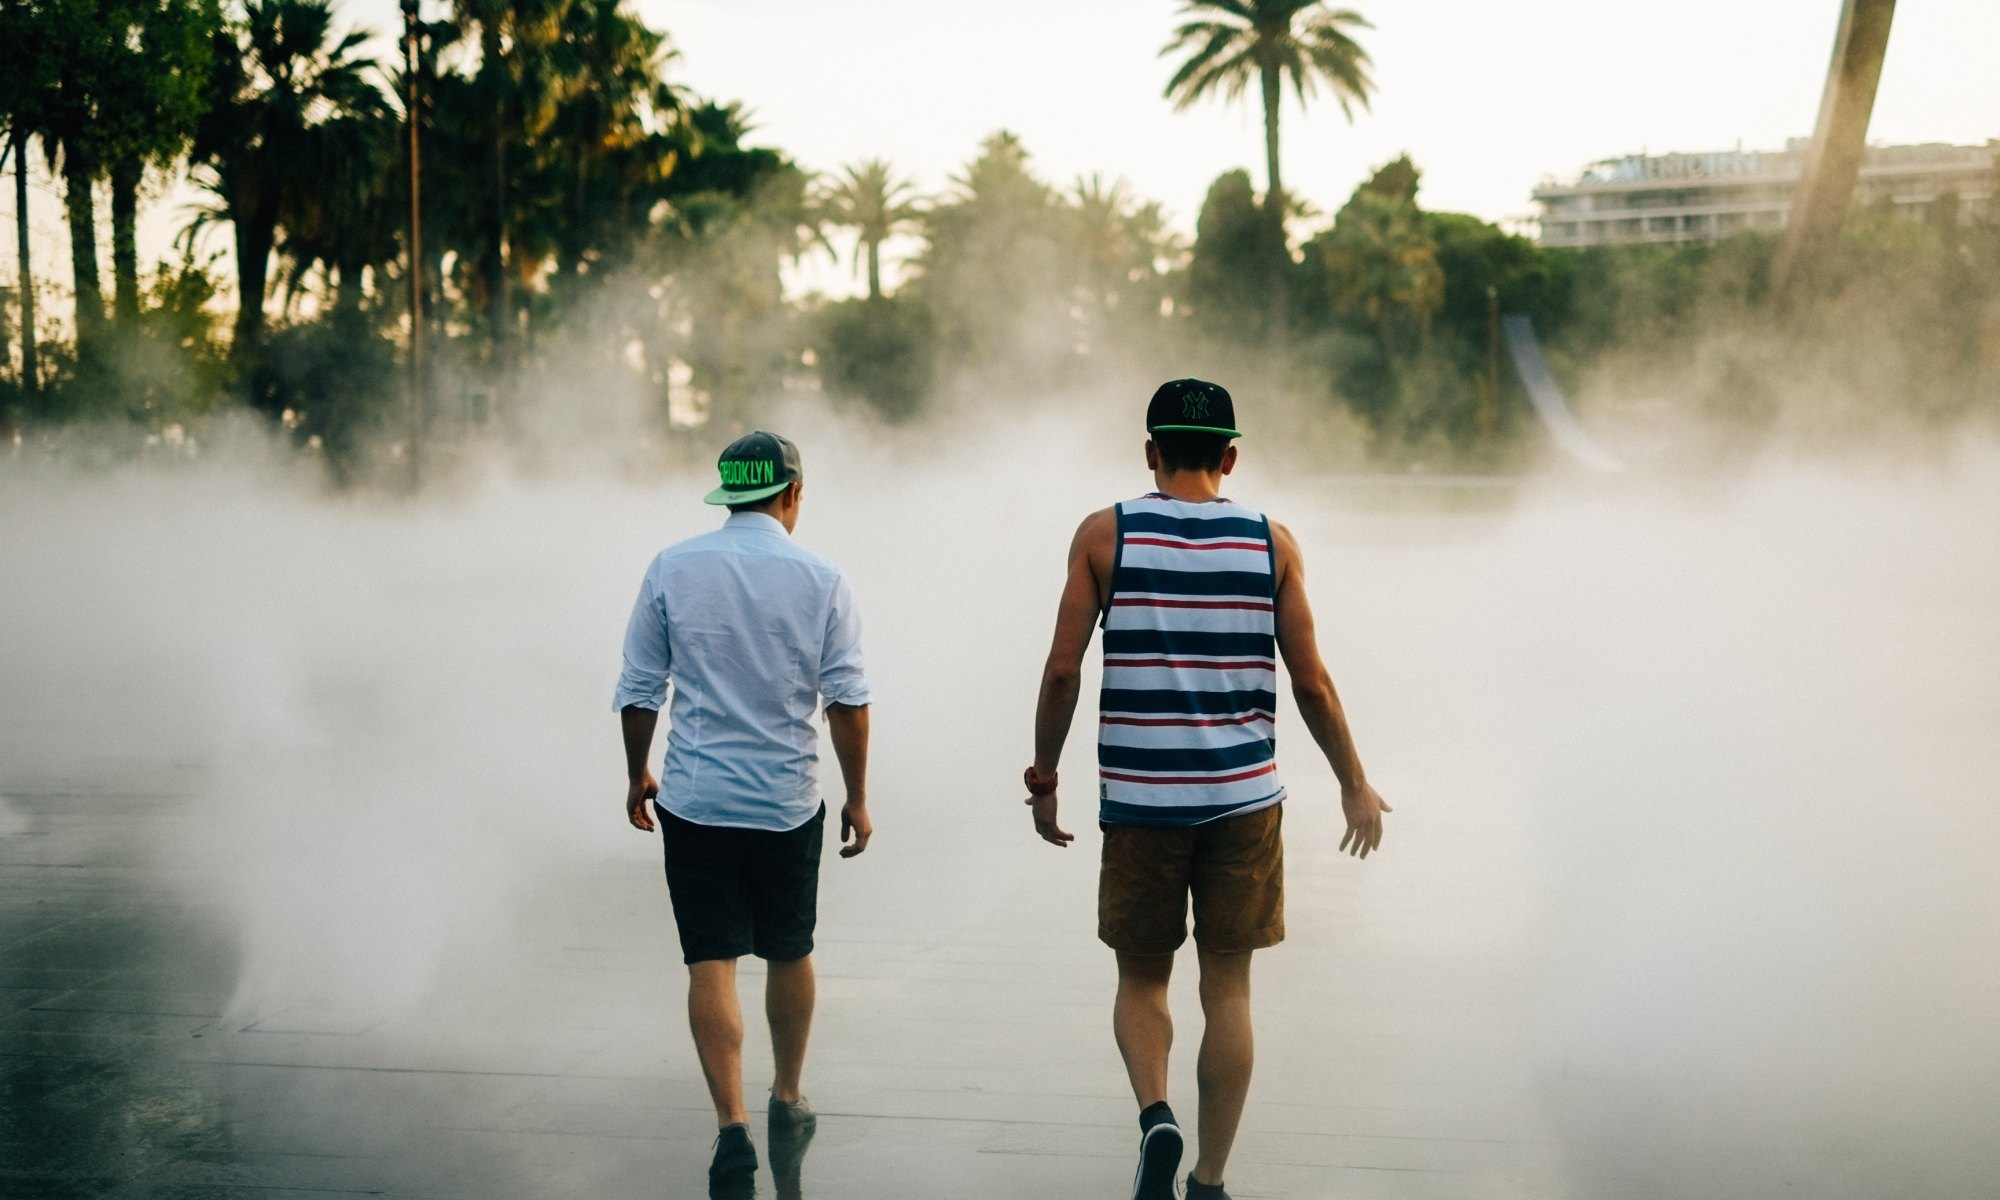 Friends walking in front of water fountain around palm trees